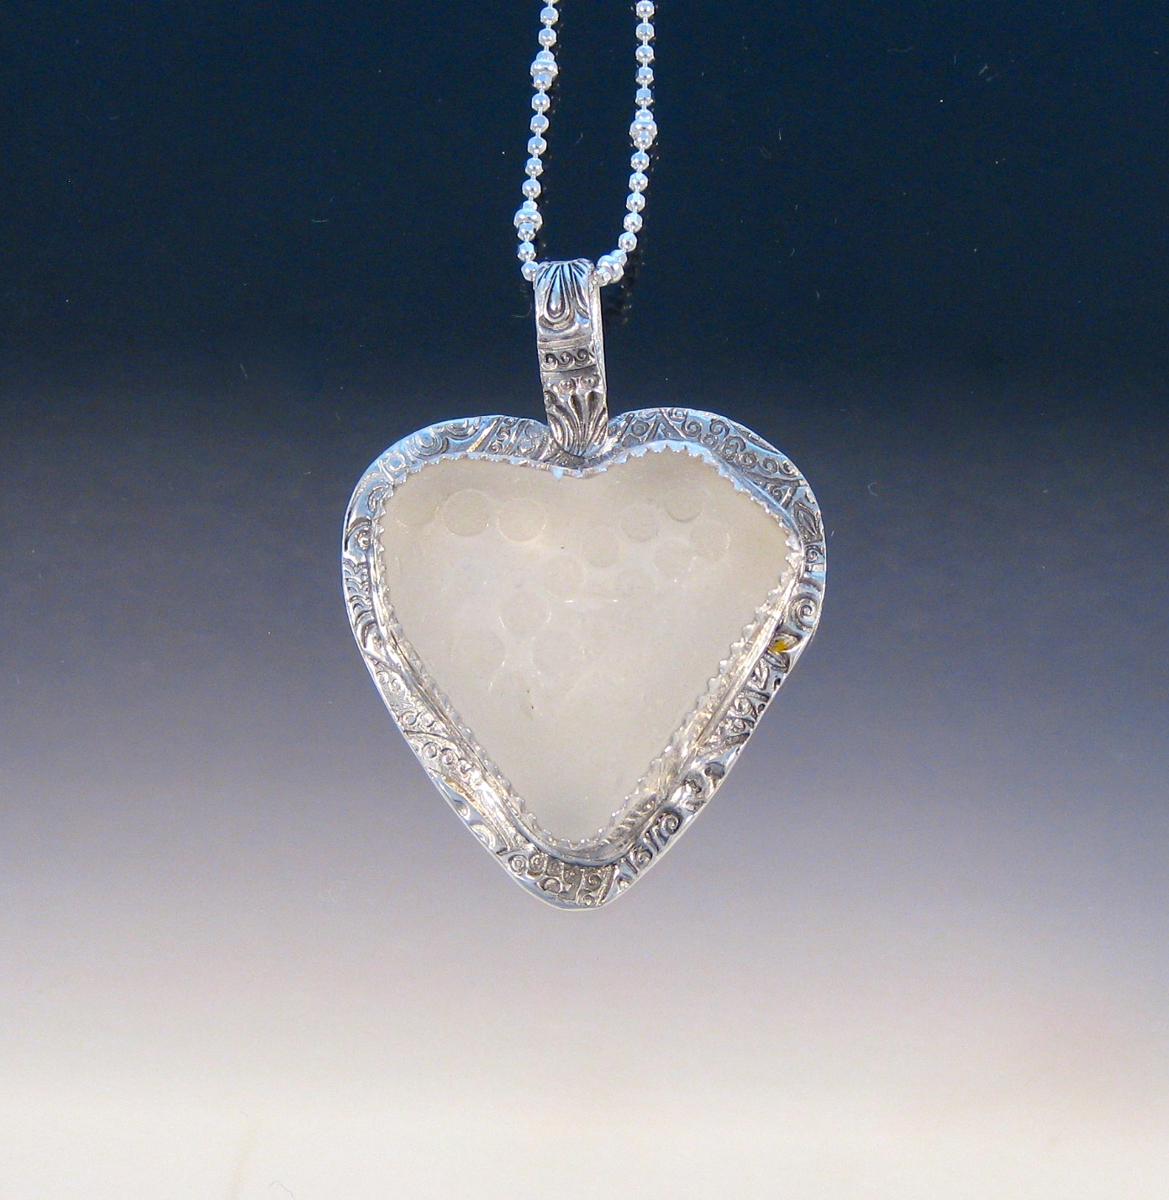 P5071 - Pure white sea glass heart (large view)